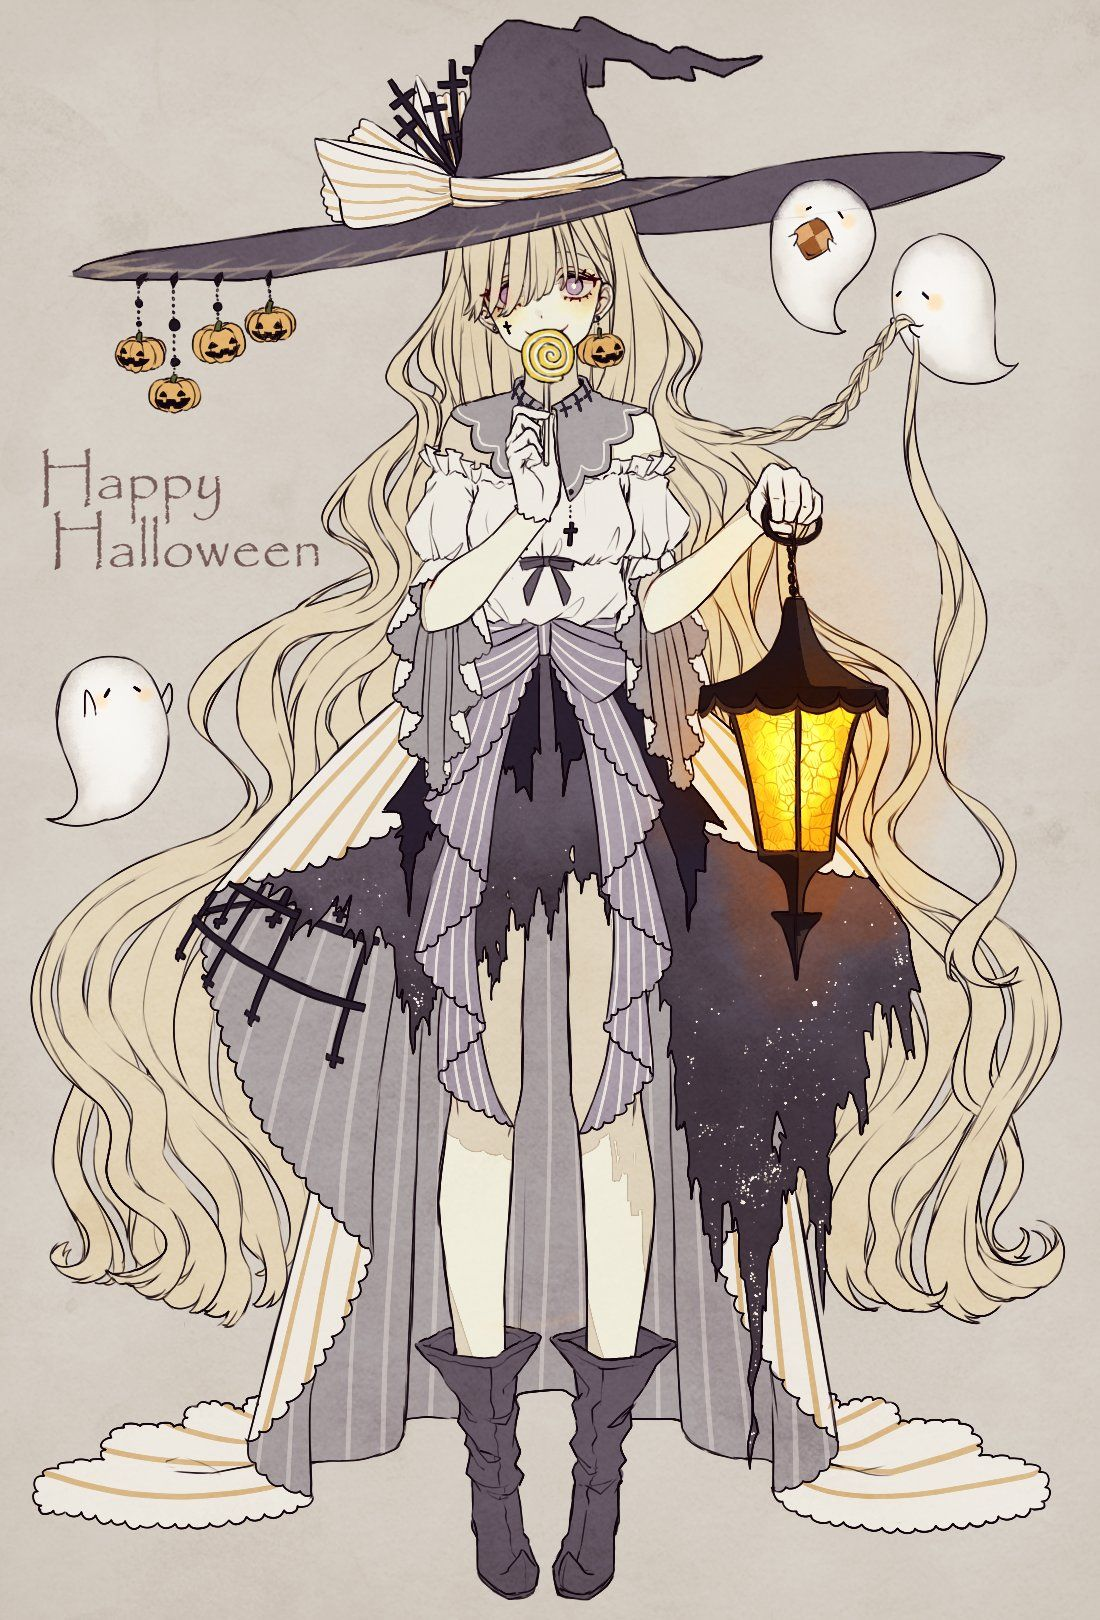 Halloween Hema Pin By Hema On Wallpapers Dessin Steampunk Dessin Animé Manga